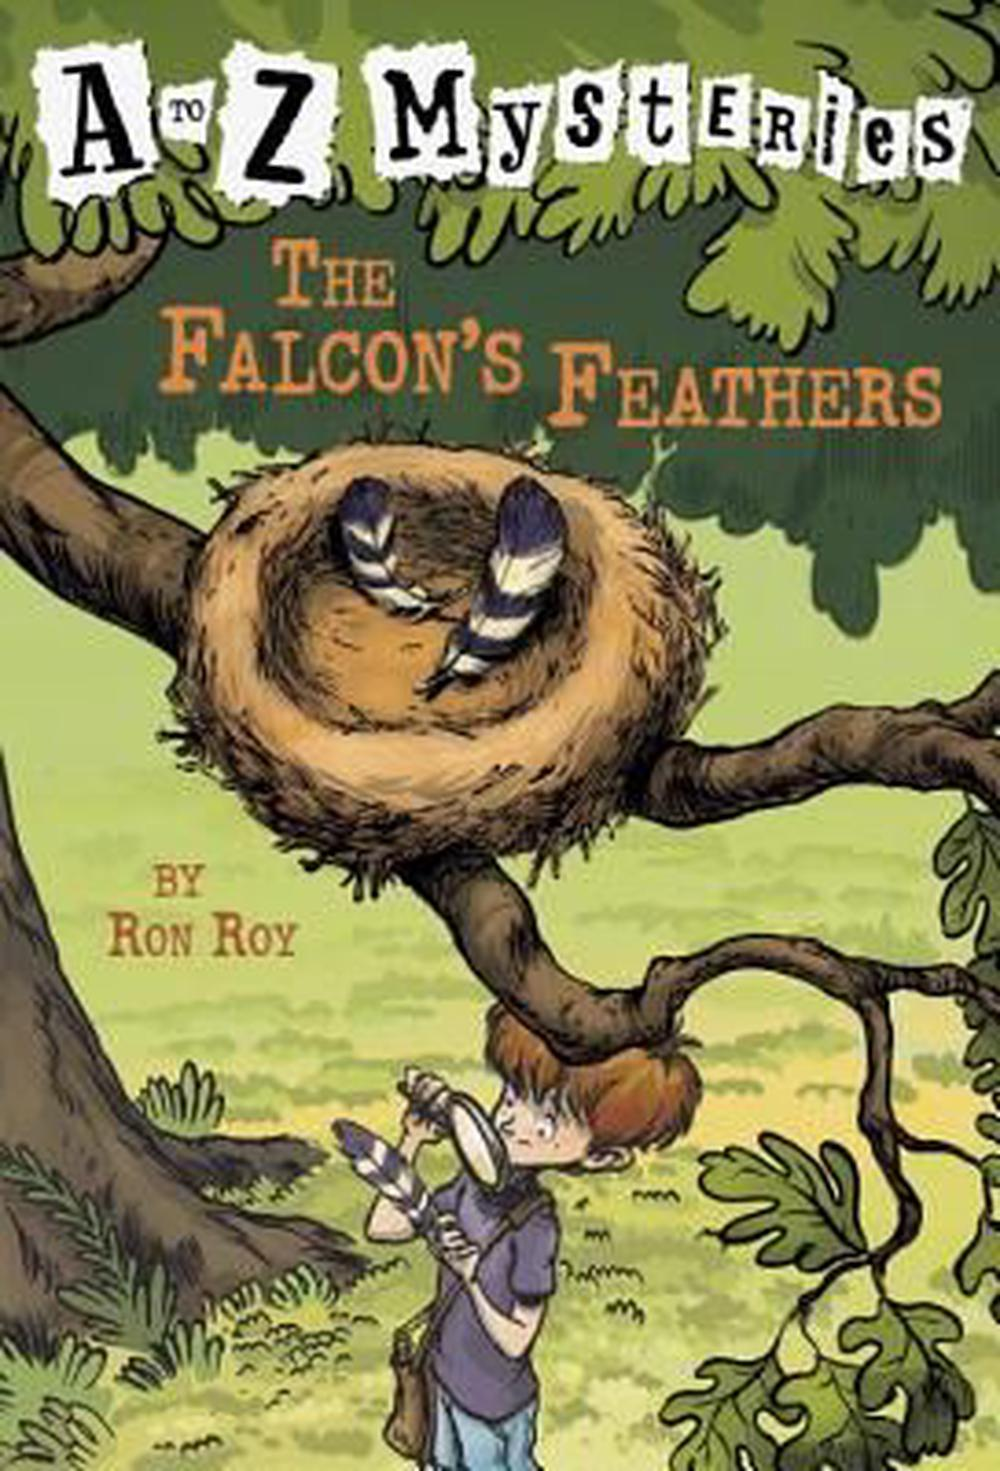 The Falcon's Feathers